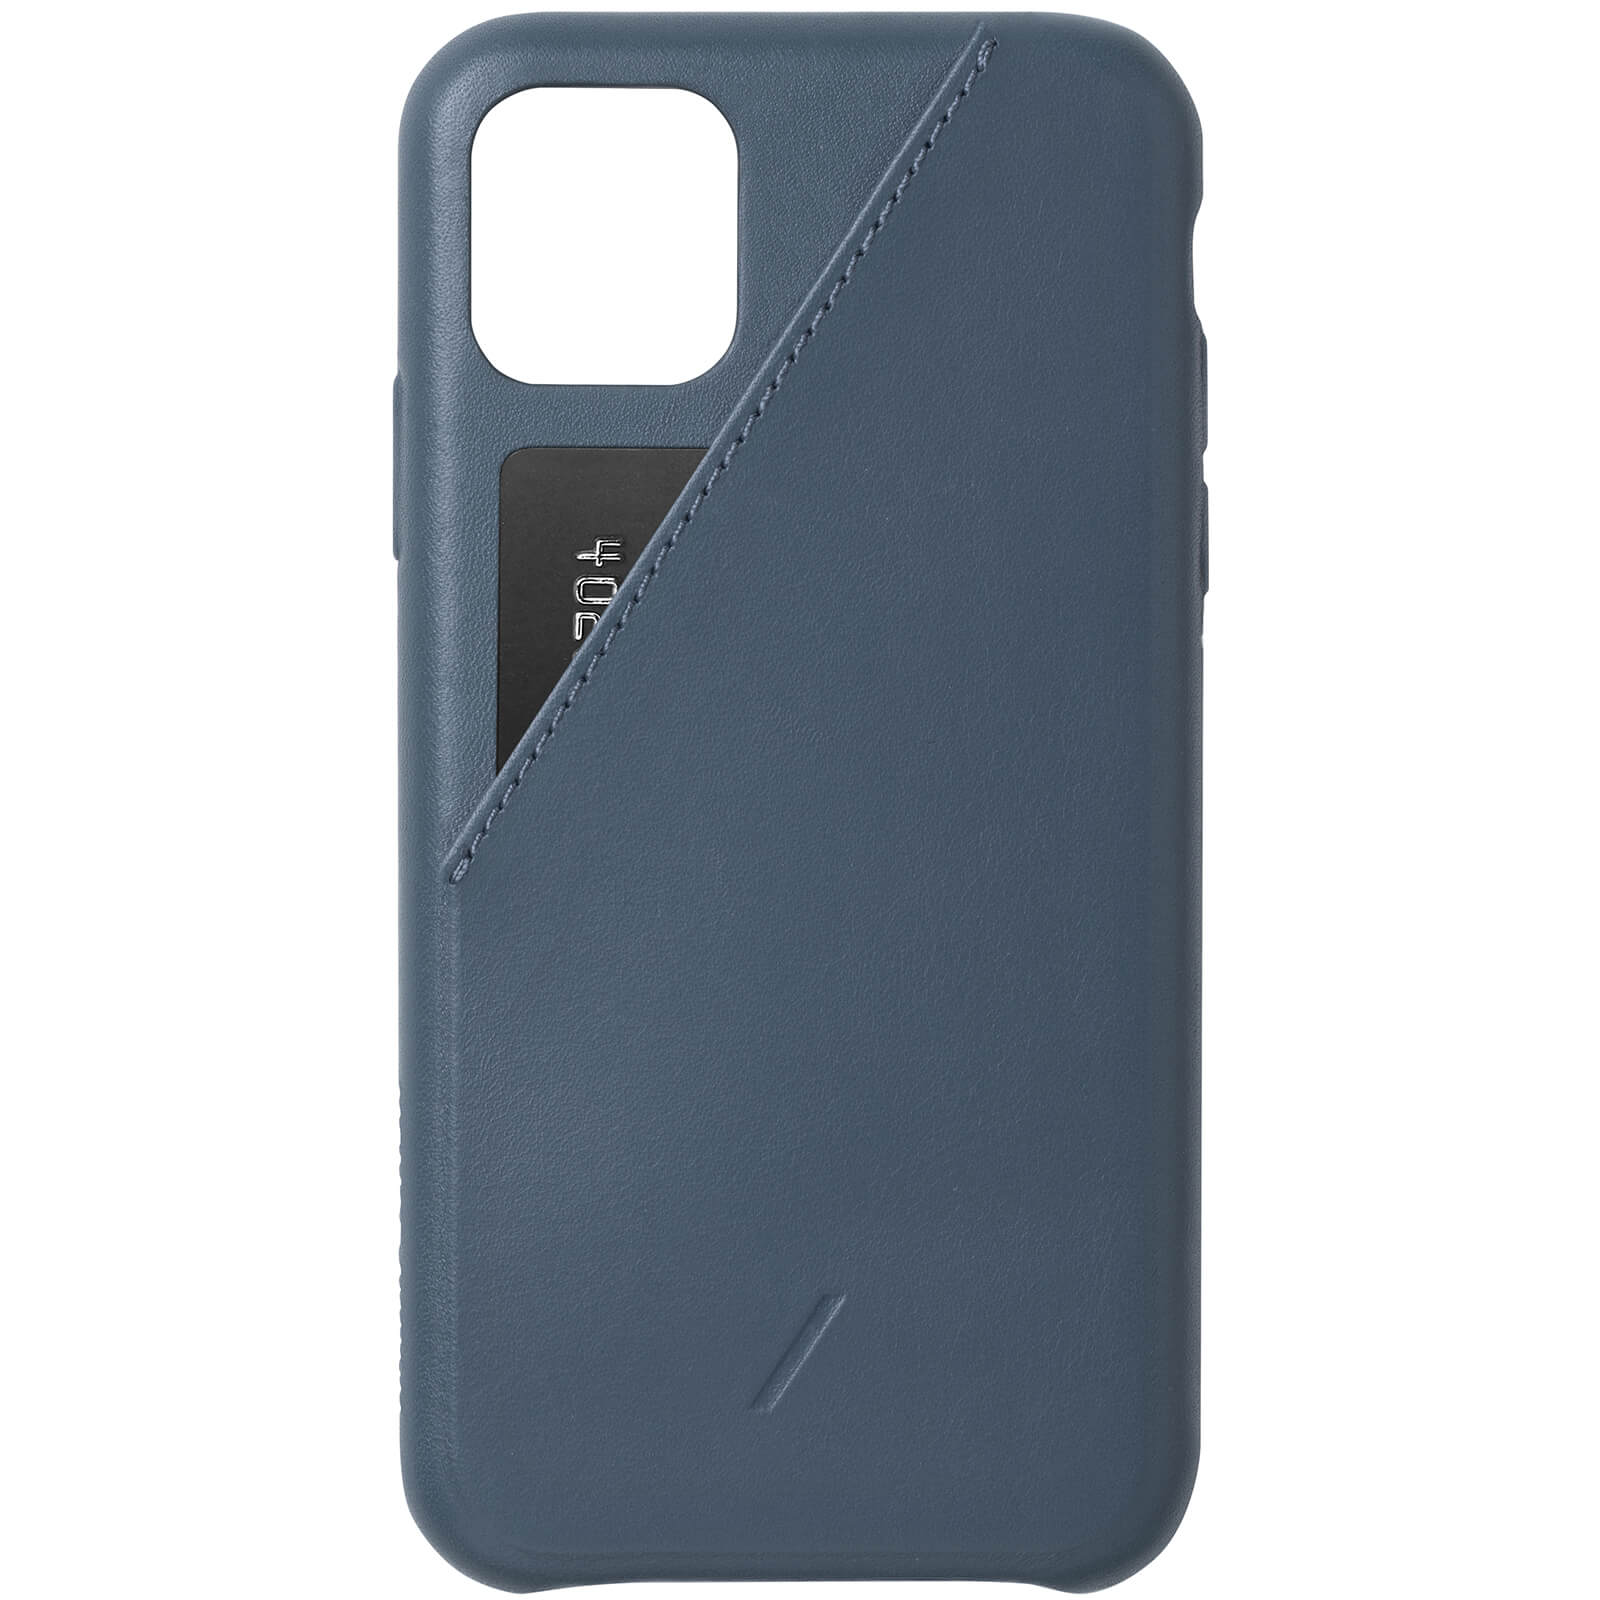 Native Union Clic Card iPhone Case - Navy - iPhone 11